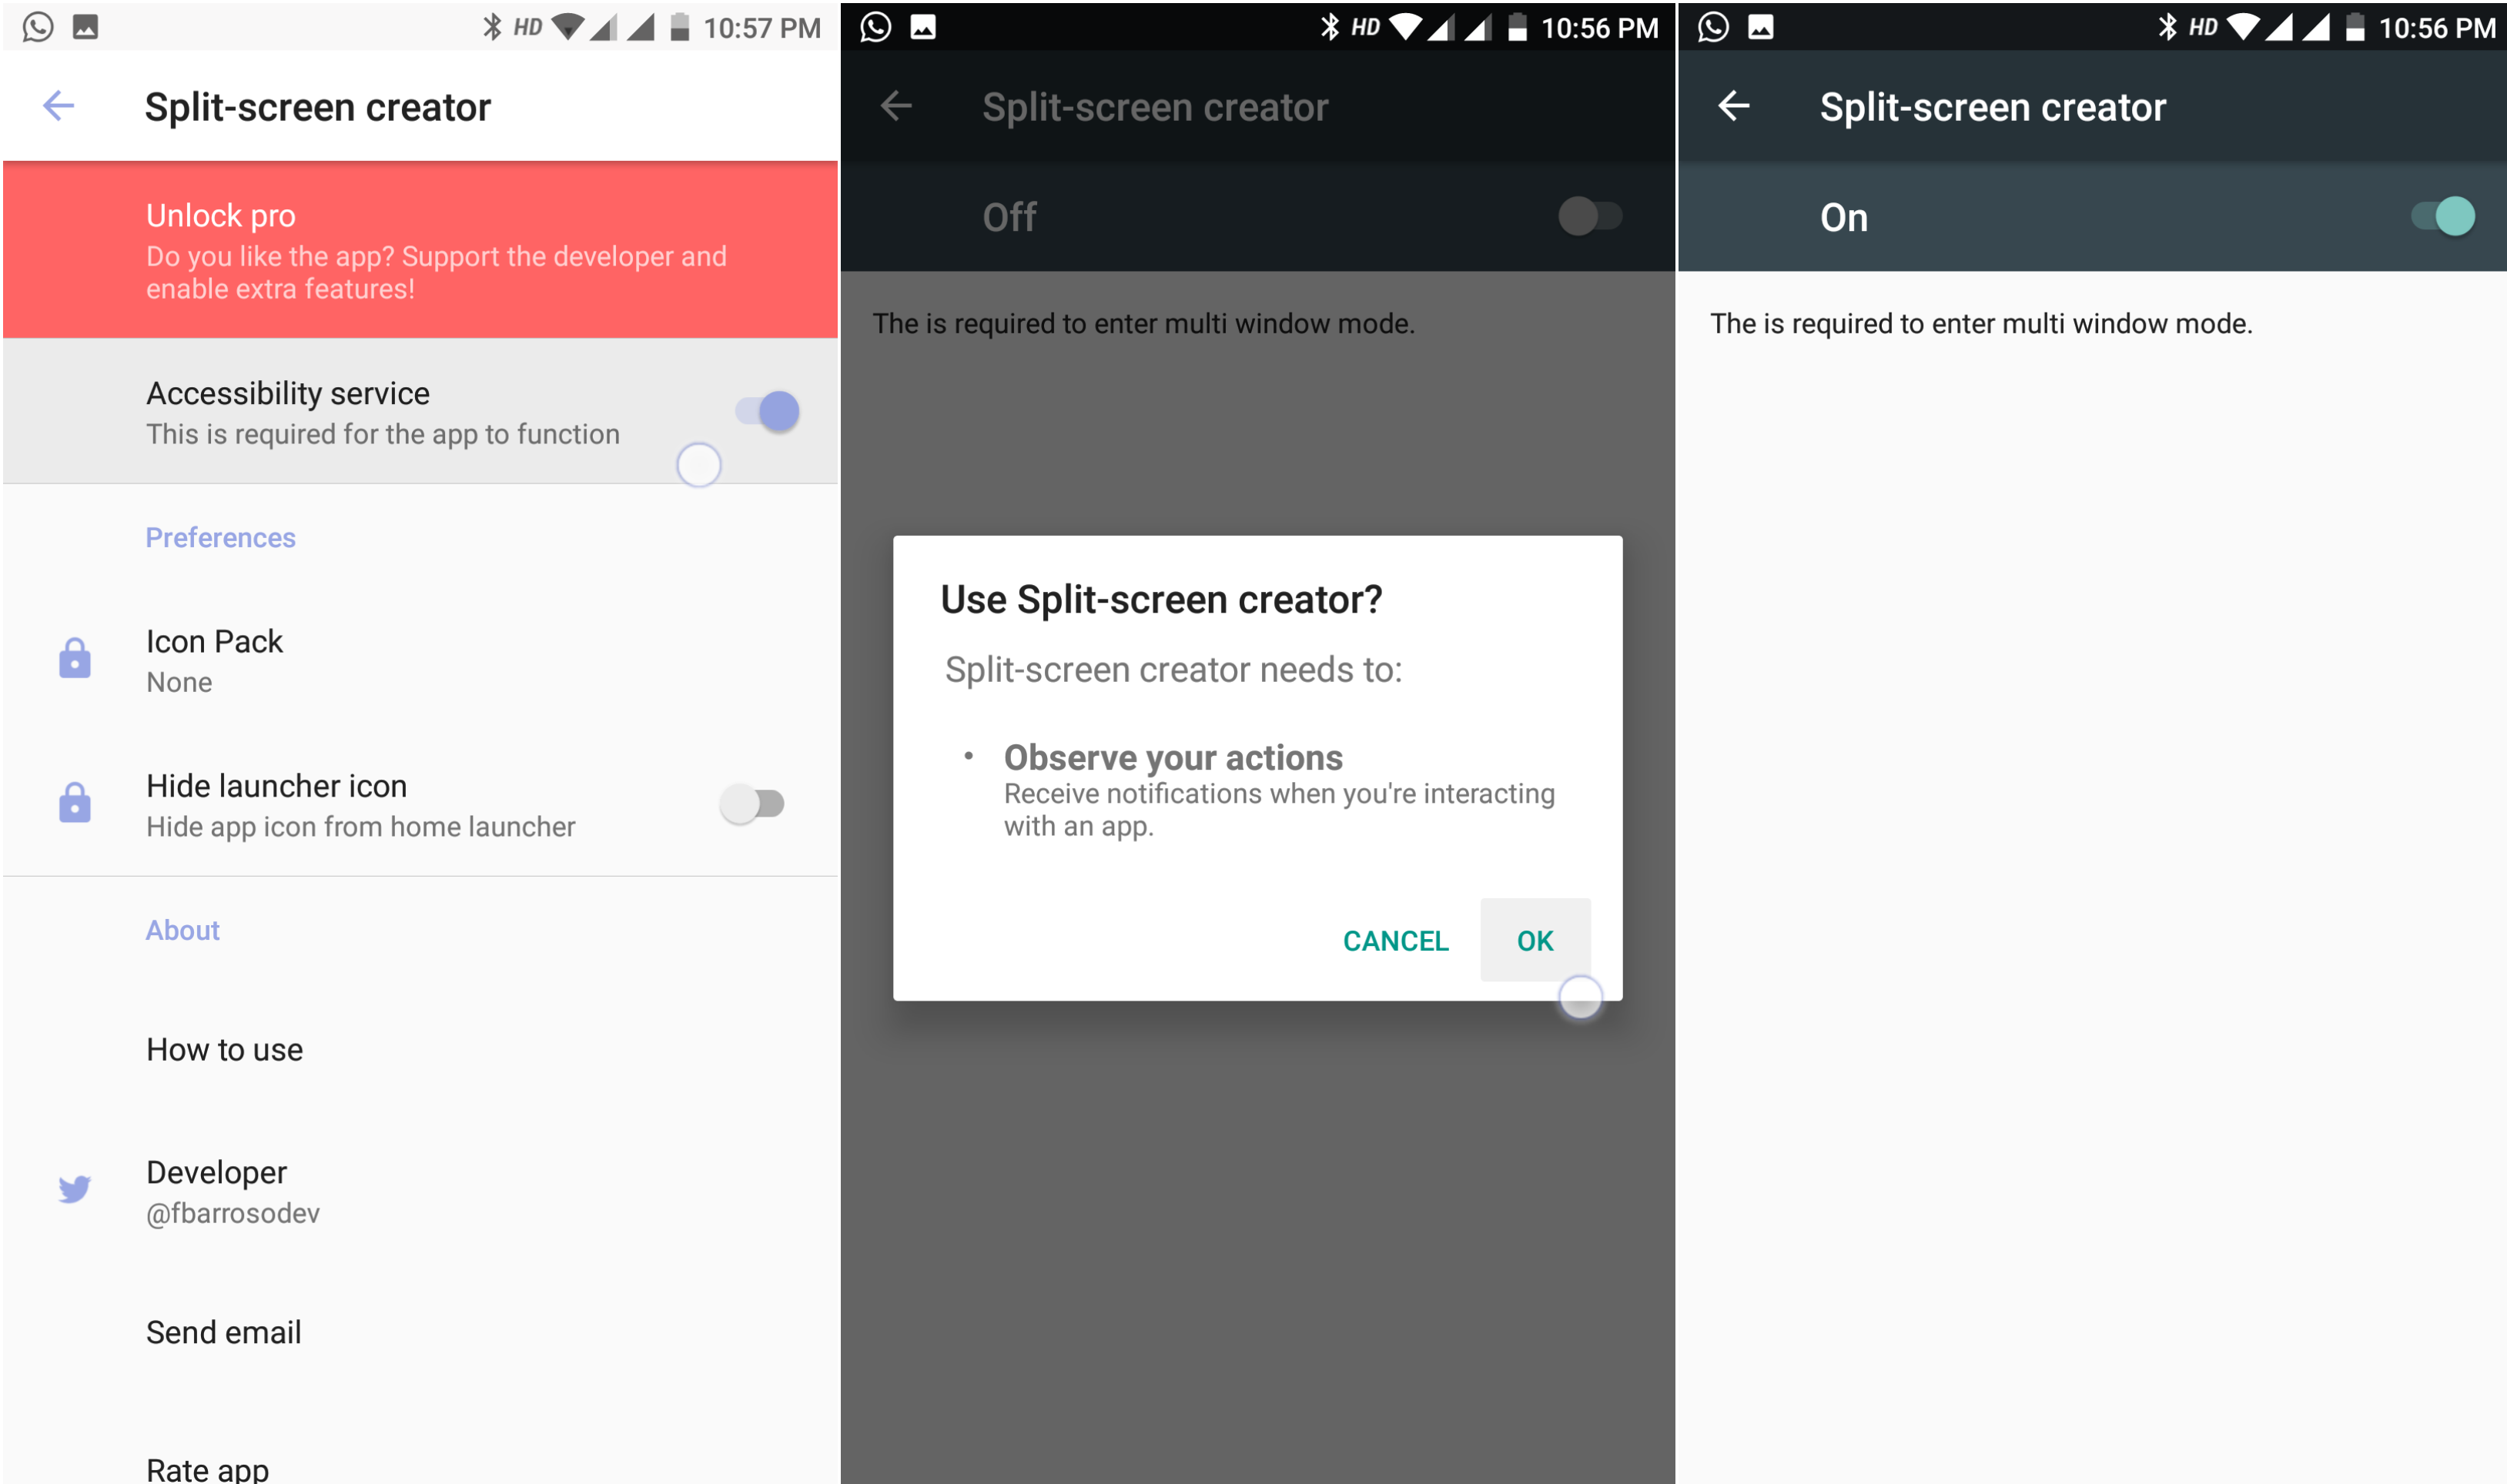 Launch Your Favorite Apps in Android Multitasking View